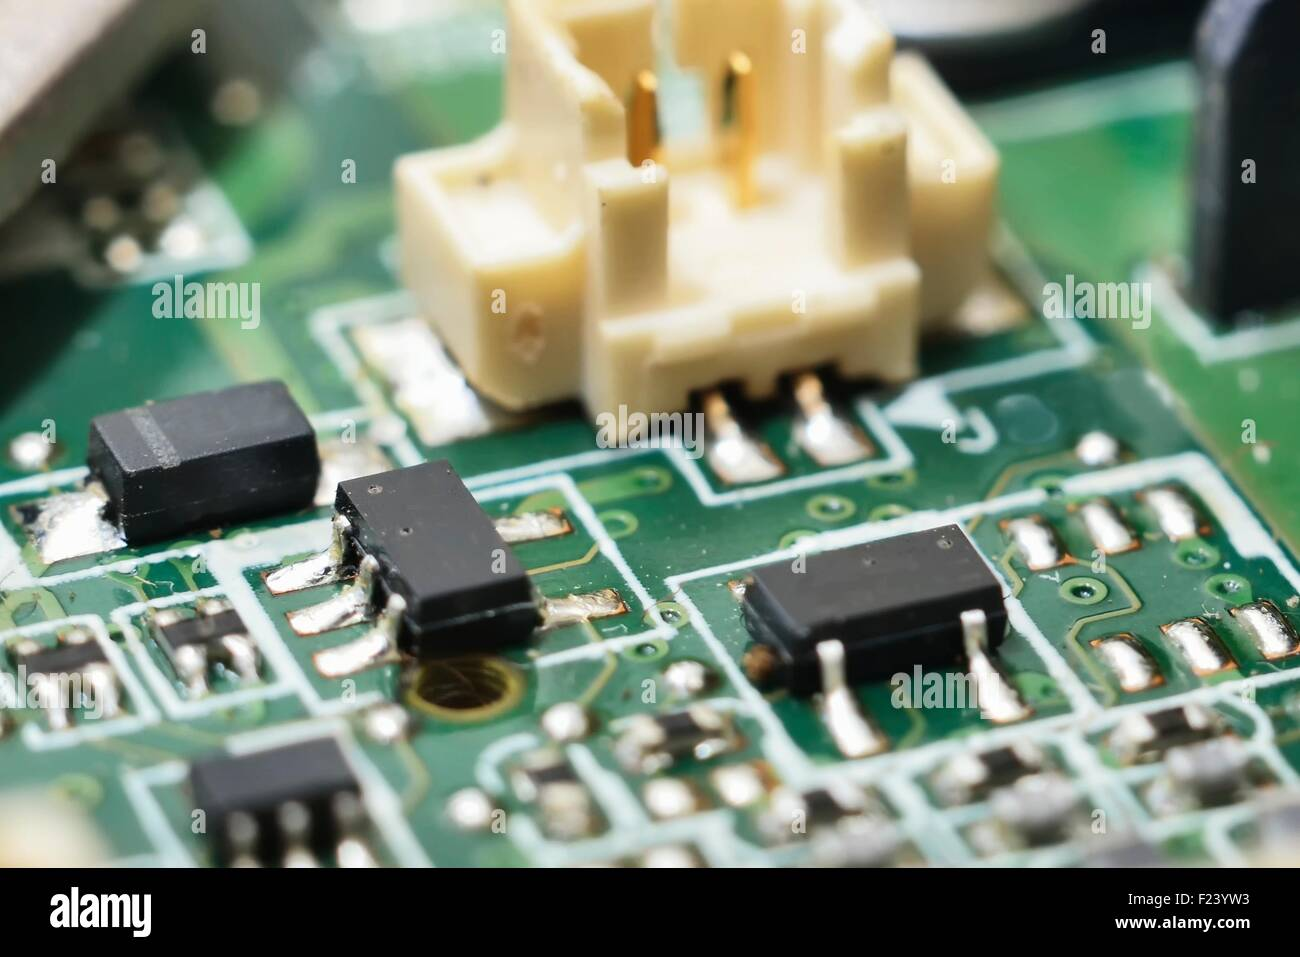 Printed Circuit Board Assembly Stock Photos Stockfoto Pcb Used In Industrial Electronic Manufacturing Image